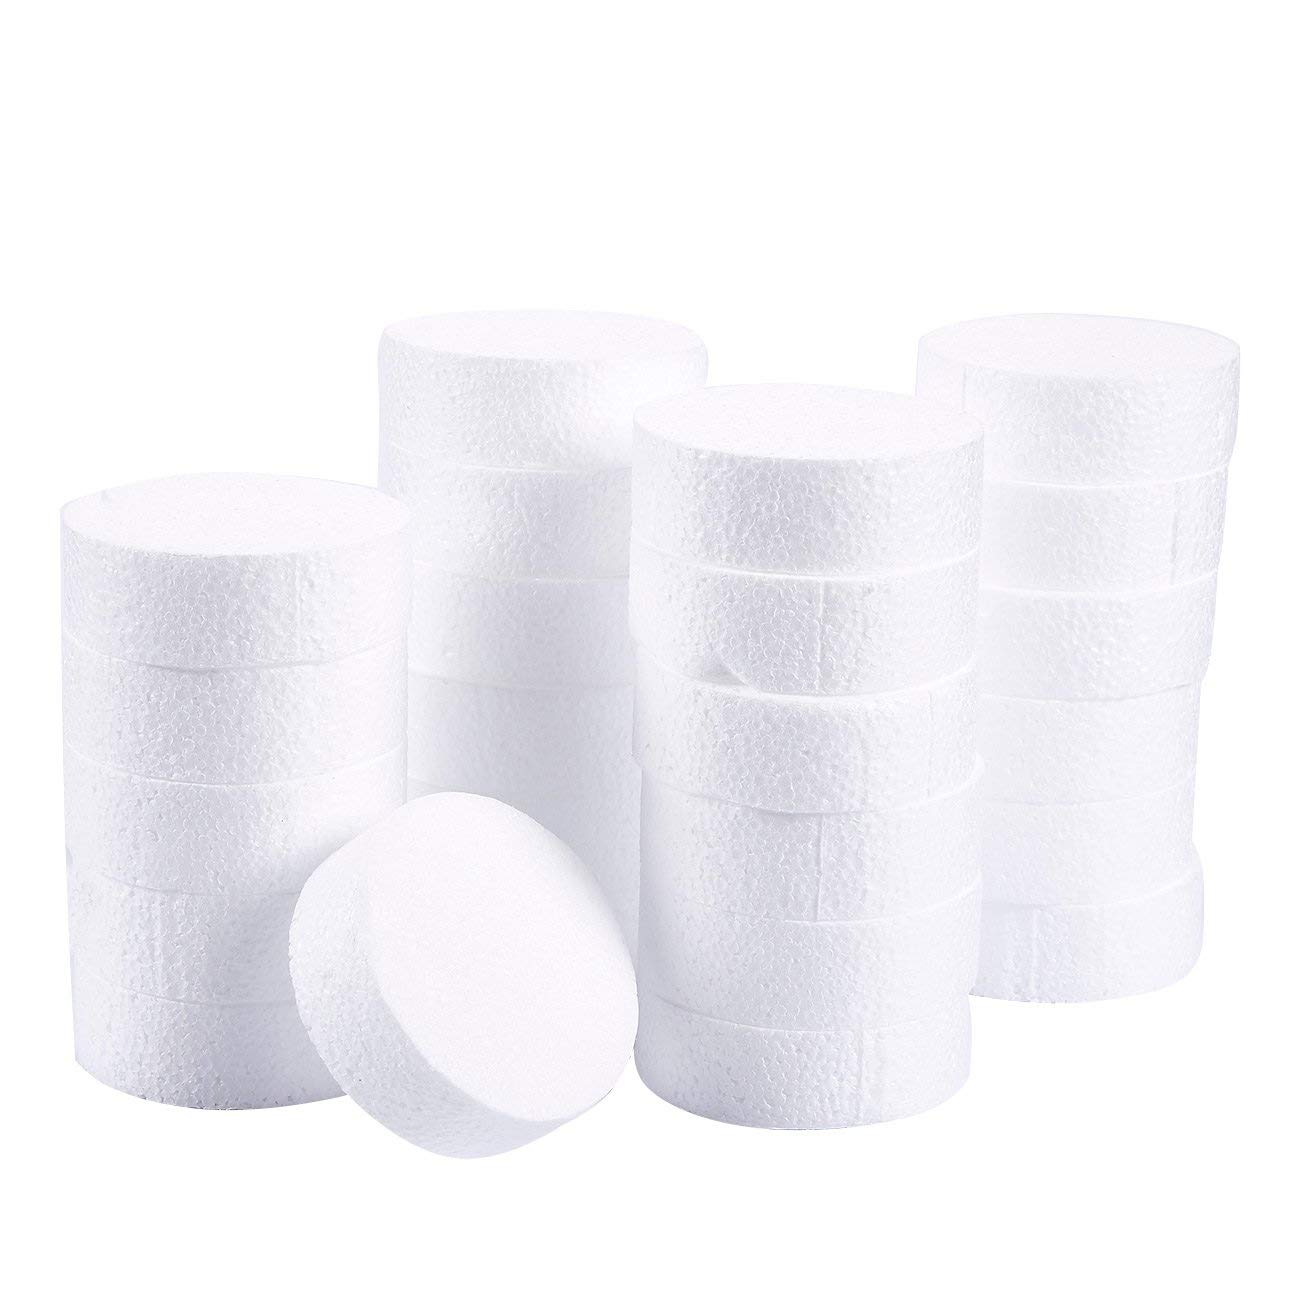 Craft Foam Circle Modeling White 12 x 12 x 1 Inches 6-Pack Polystyrene Foam Disc Foam Round for Sculpture DIY Arts and Crafts